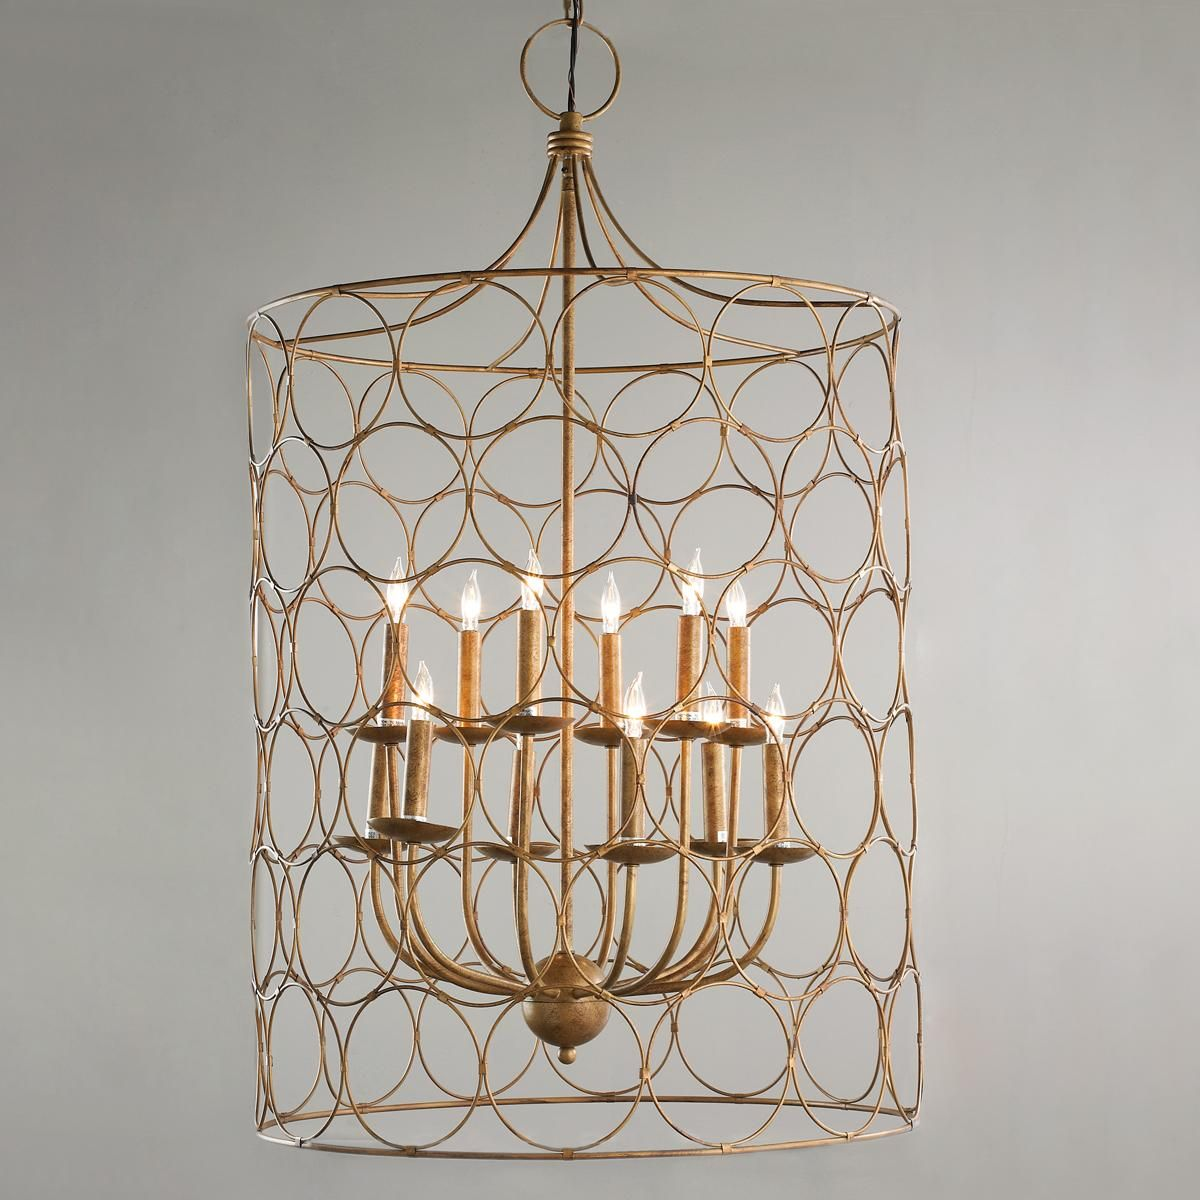 Circle Cage Candles Chandelier This Large Lantern Style Chandelier